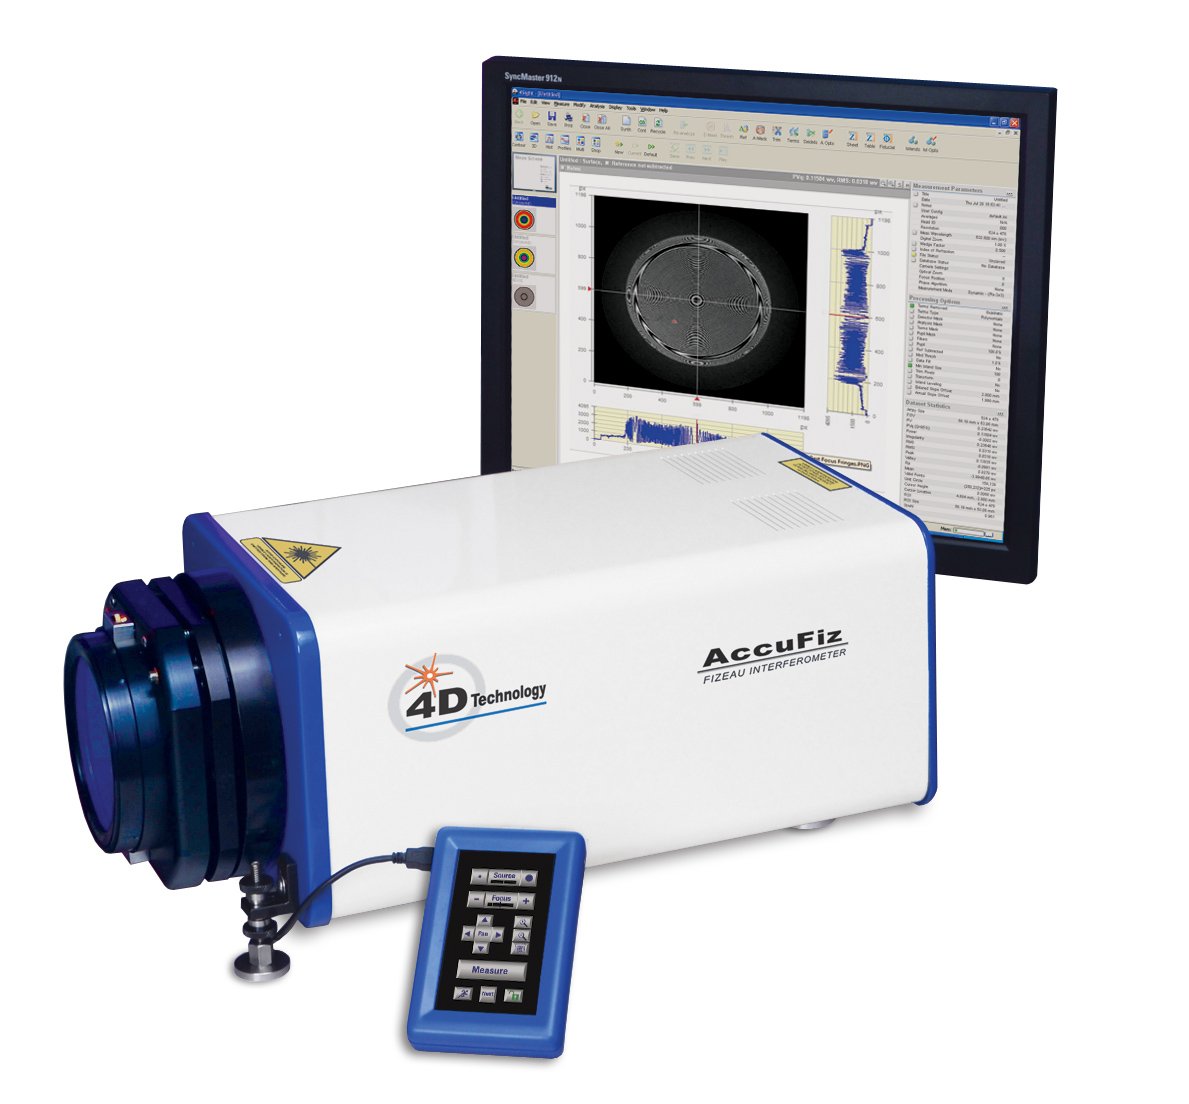 AccuFiz Fizeau Interferometer in horizontal mounting application